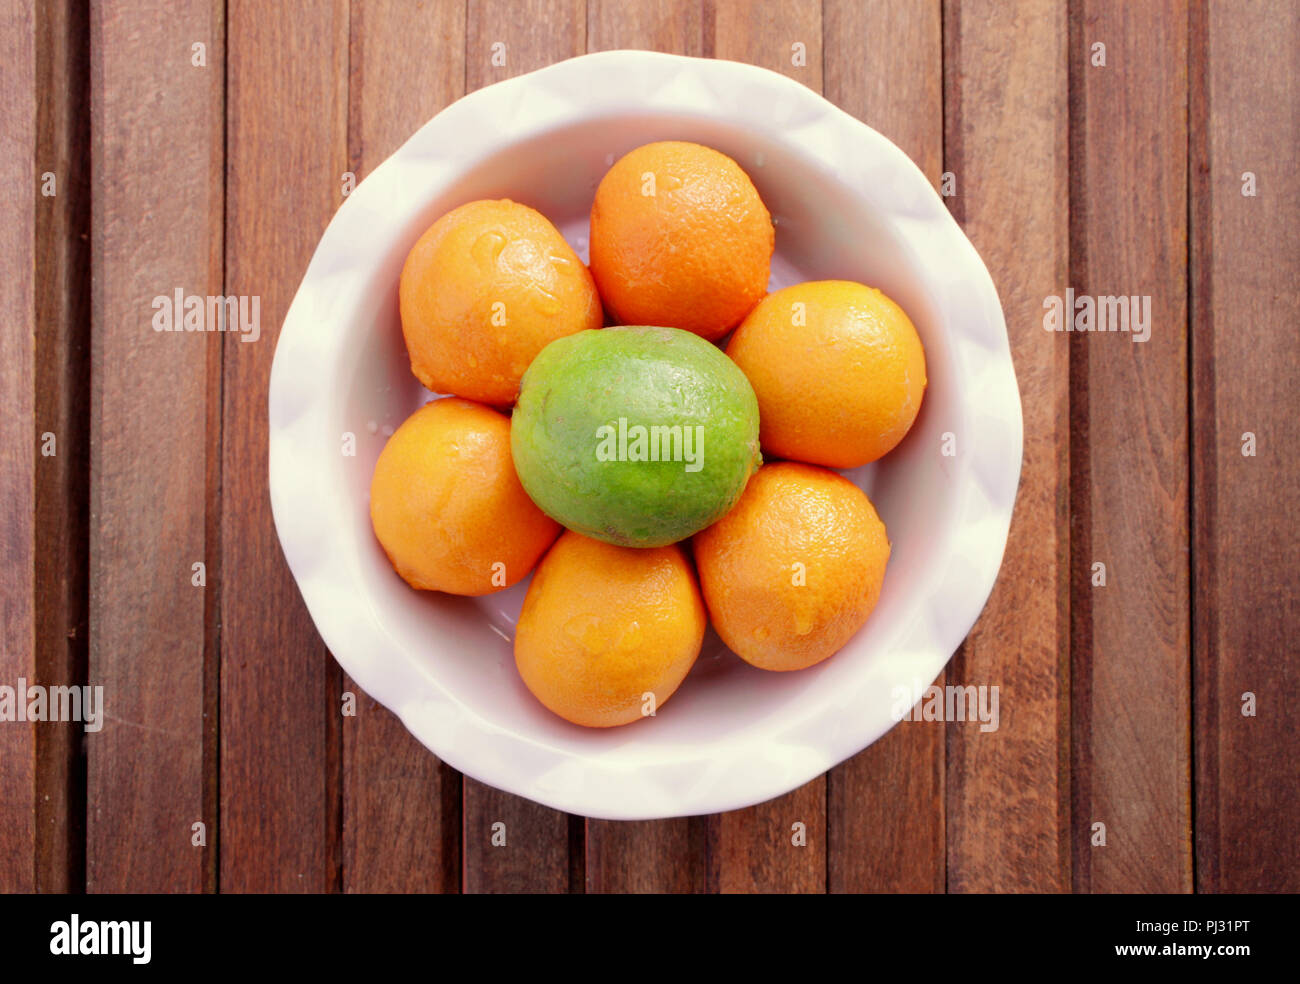 A round white bowl of six mandarin oranges and one green lime sits on a wood slat background. Stock Photo